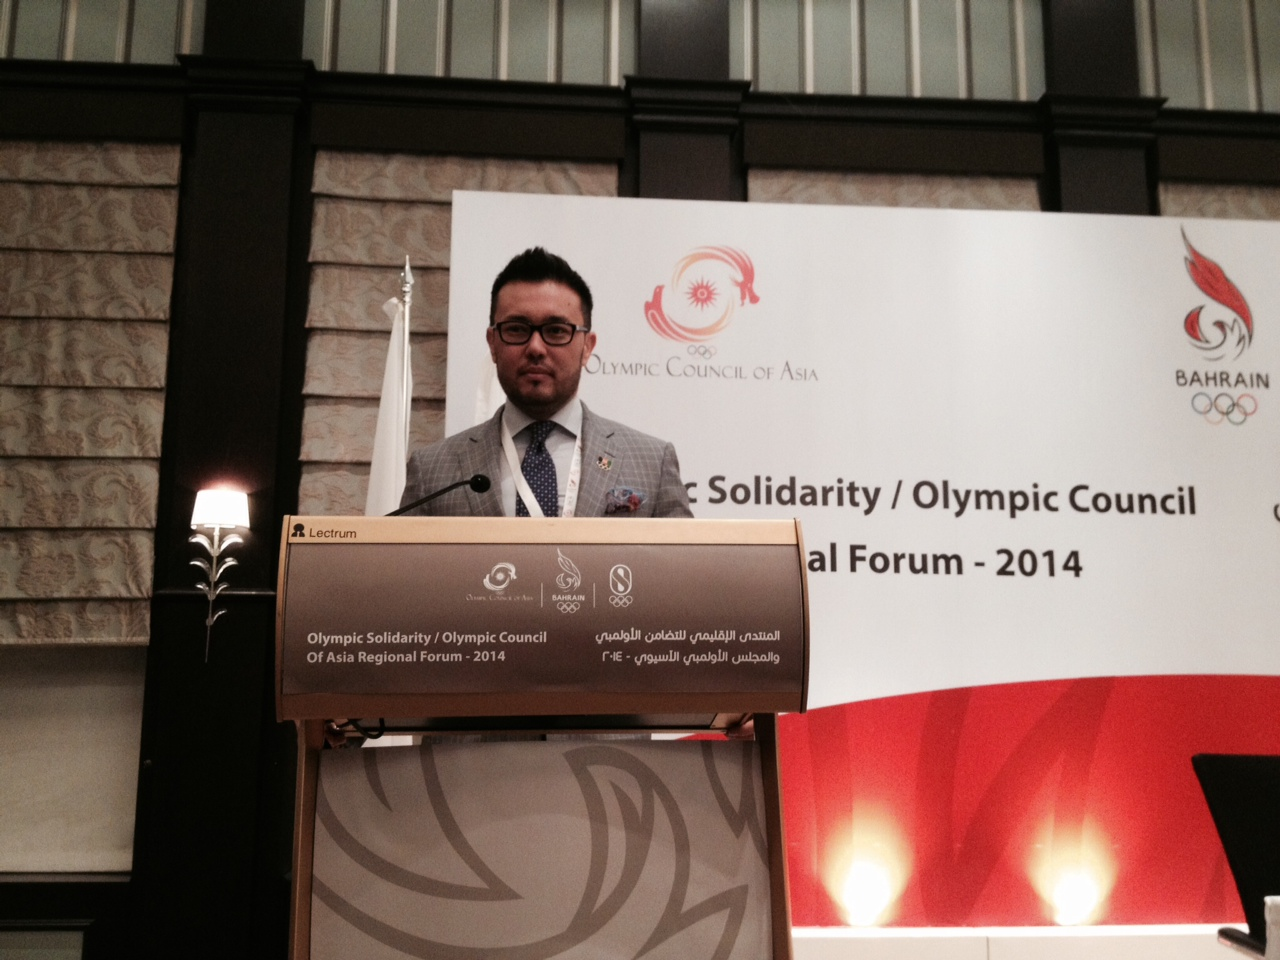 Fahim Hashimy speaking during the Regional Forum in Bahrain ©A-NOC